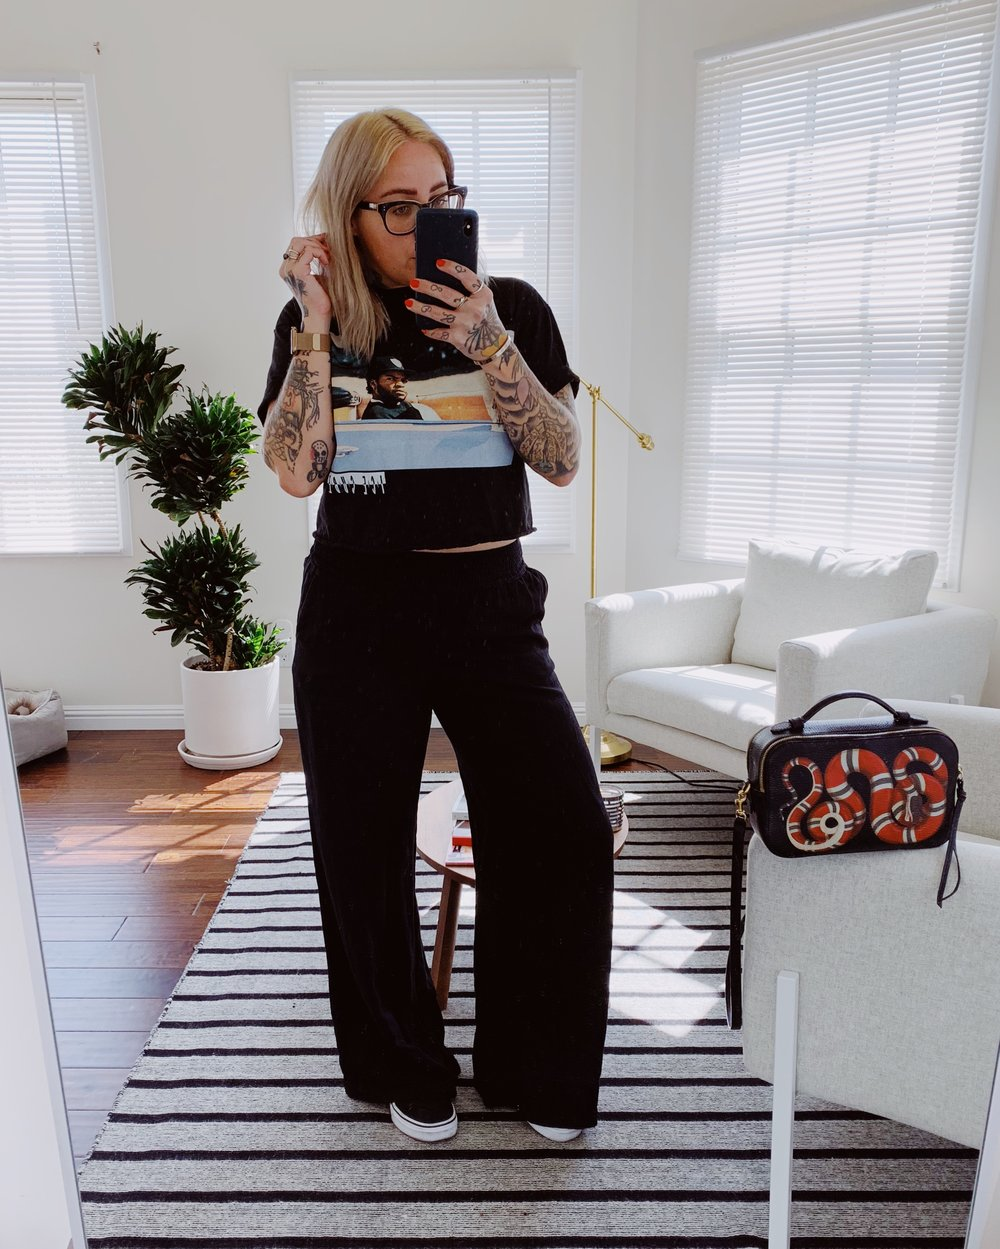 Look repos - This has became my go-to outfit for days off, Sunday brunch or lazy mornings! So easy, so comfy and super cute!I've been a big fan of wide leg pants lately and they look amazing paired with a baggy cropped top and sneakers. If you follow me, you also know that I'm the queen of graphic tees! I can't get away from them haha. I wear some of them oversized, some tied in a knot, and many times, I bring the scissors and crop them as soon as I get home. So many options to dress 'em up or down!Click here to shop pants.Click here to shop graphic tee.